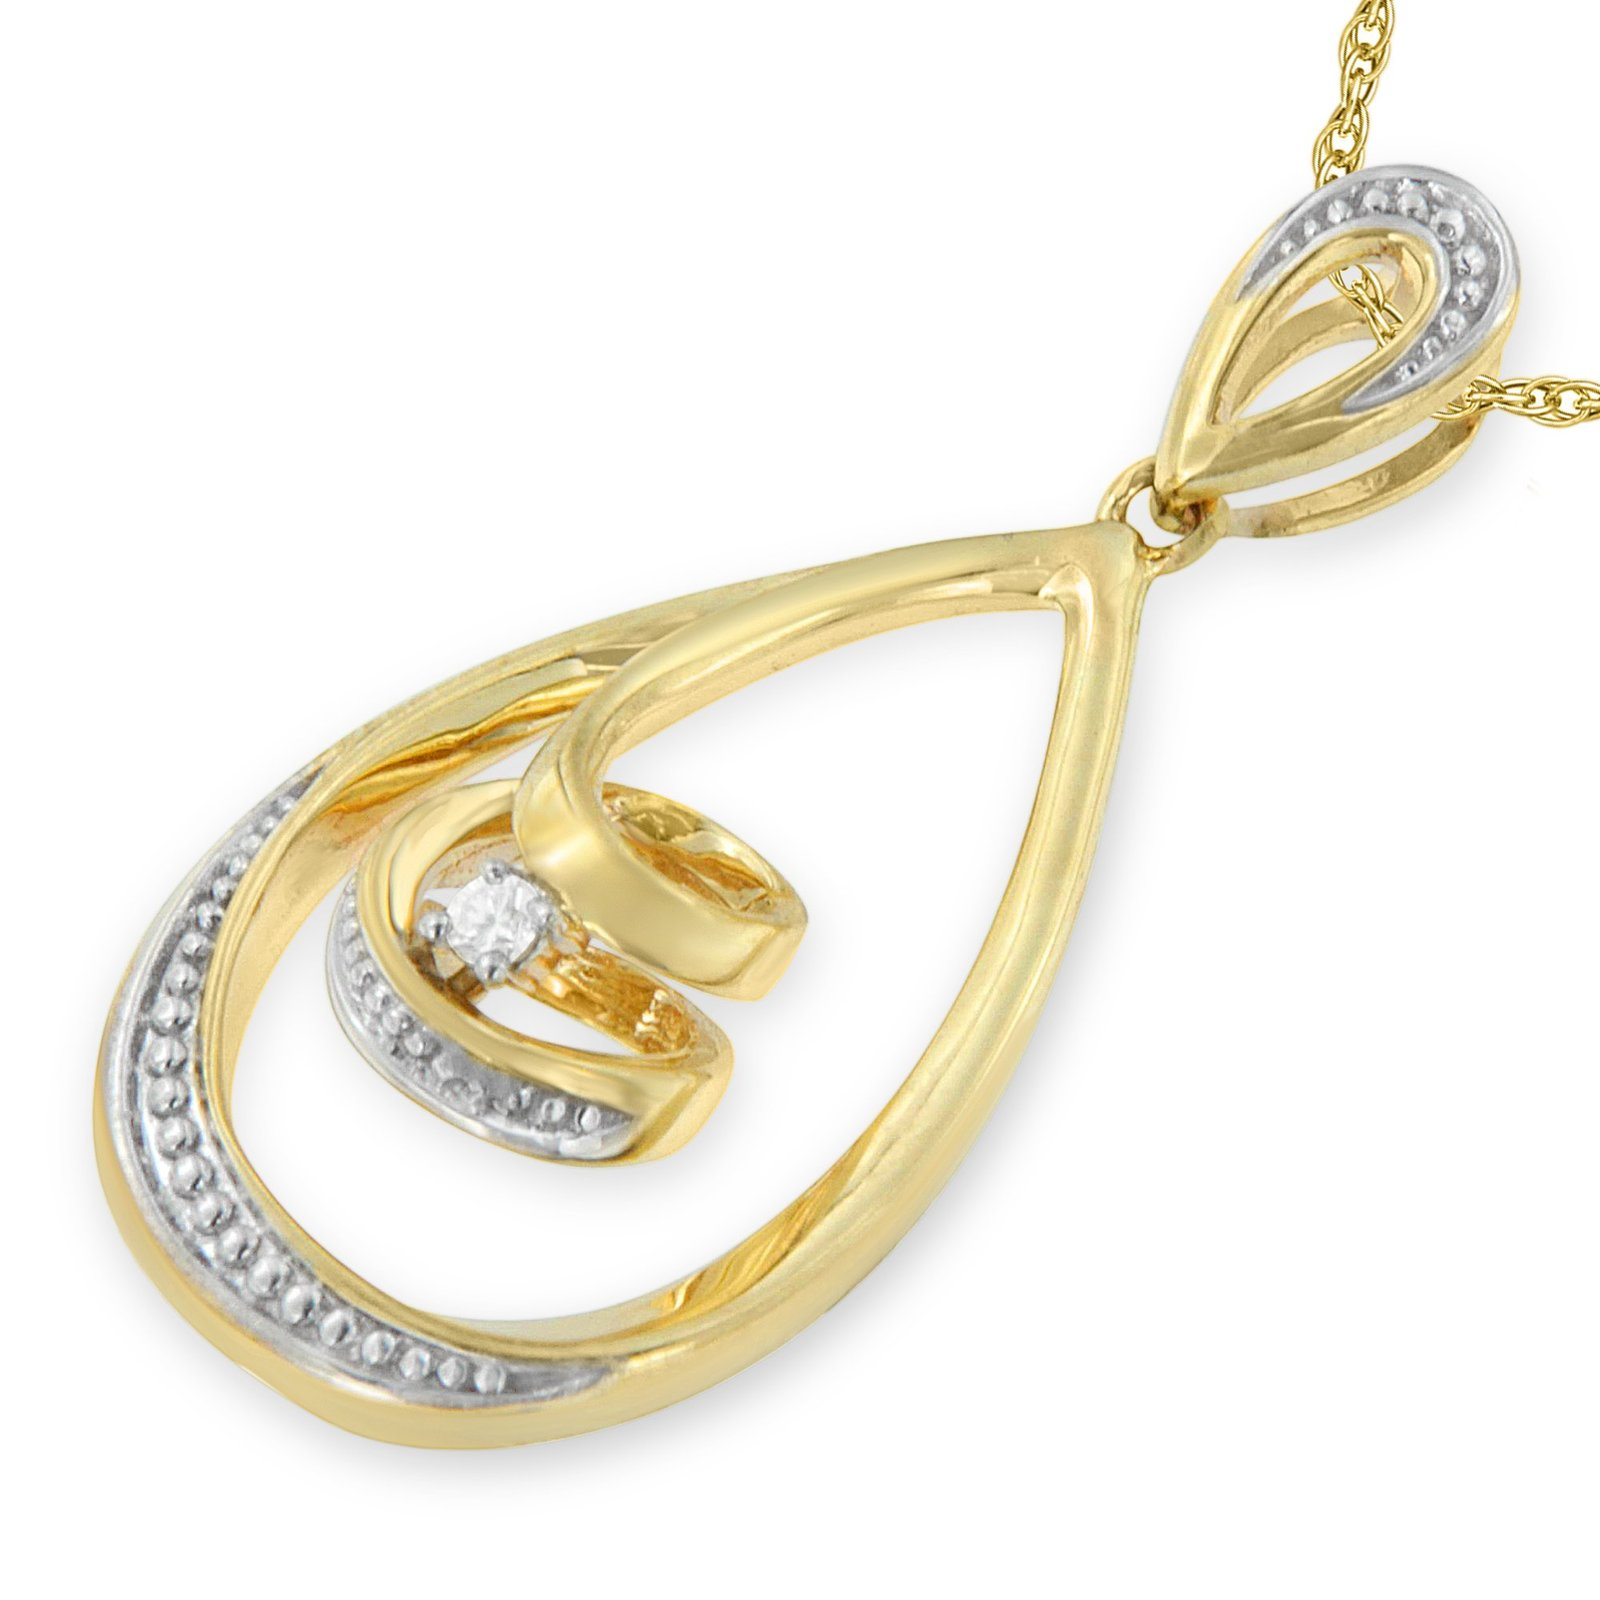 Primary image for 10k Yellow Gold Diamond Accent Fashion Pendant